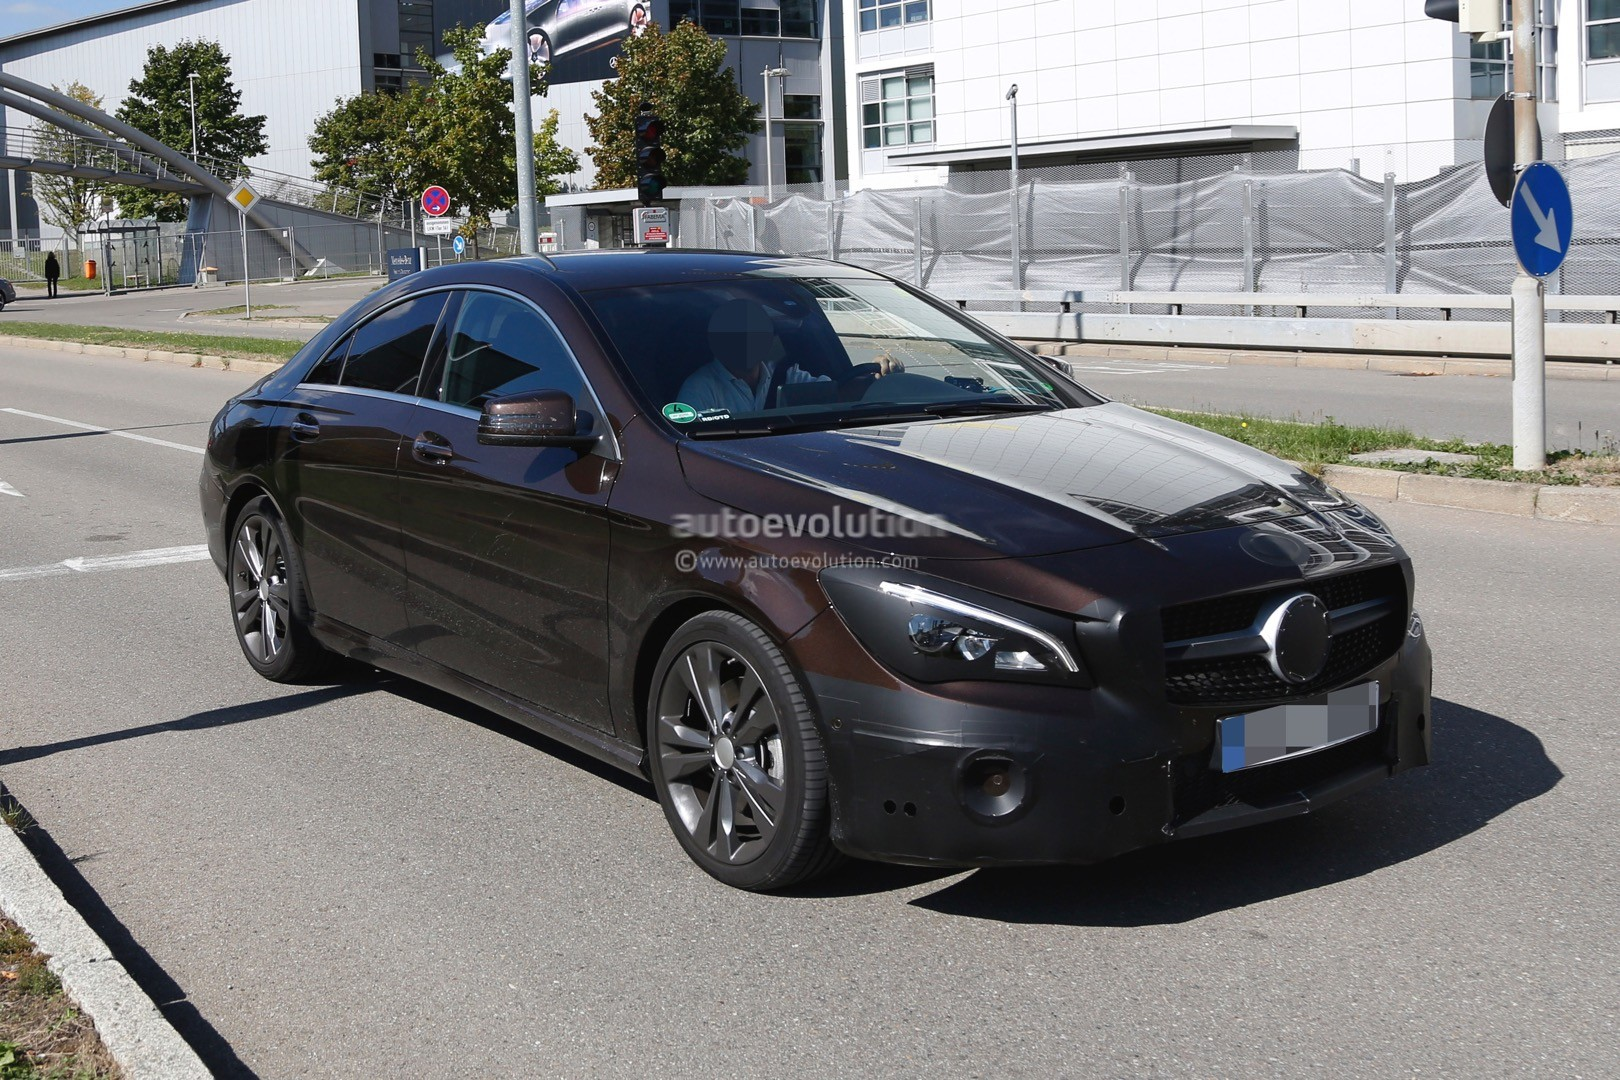 2017 Mercedes Benz CLA Class Facelift Spied With Minimal